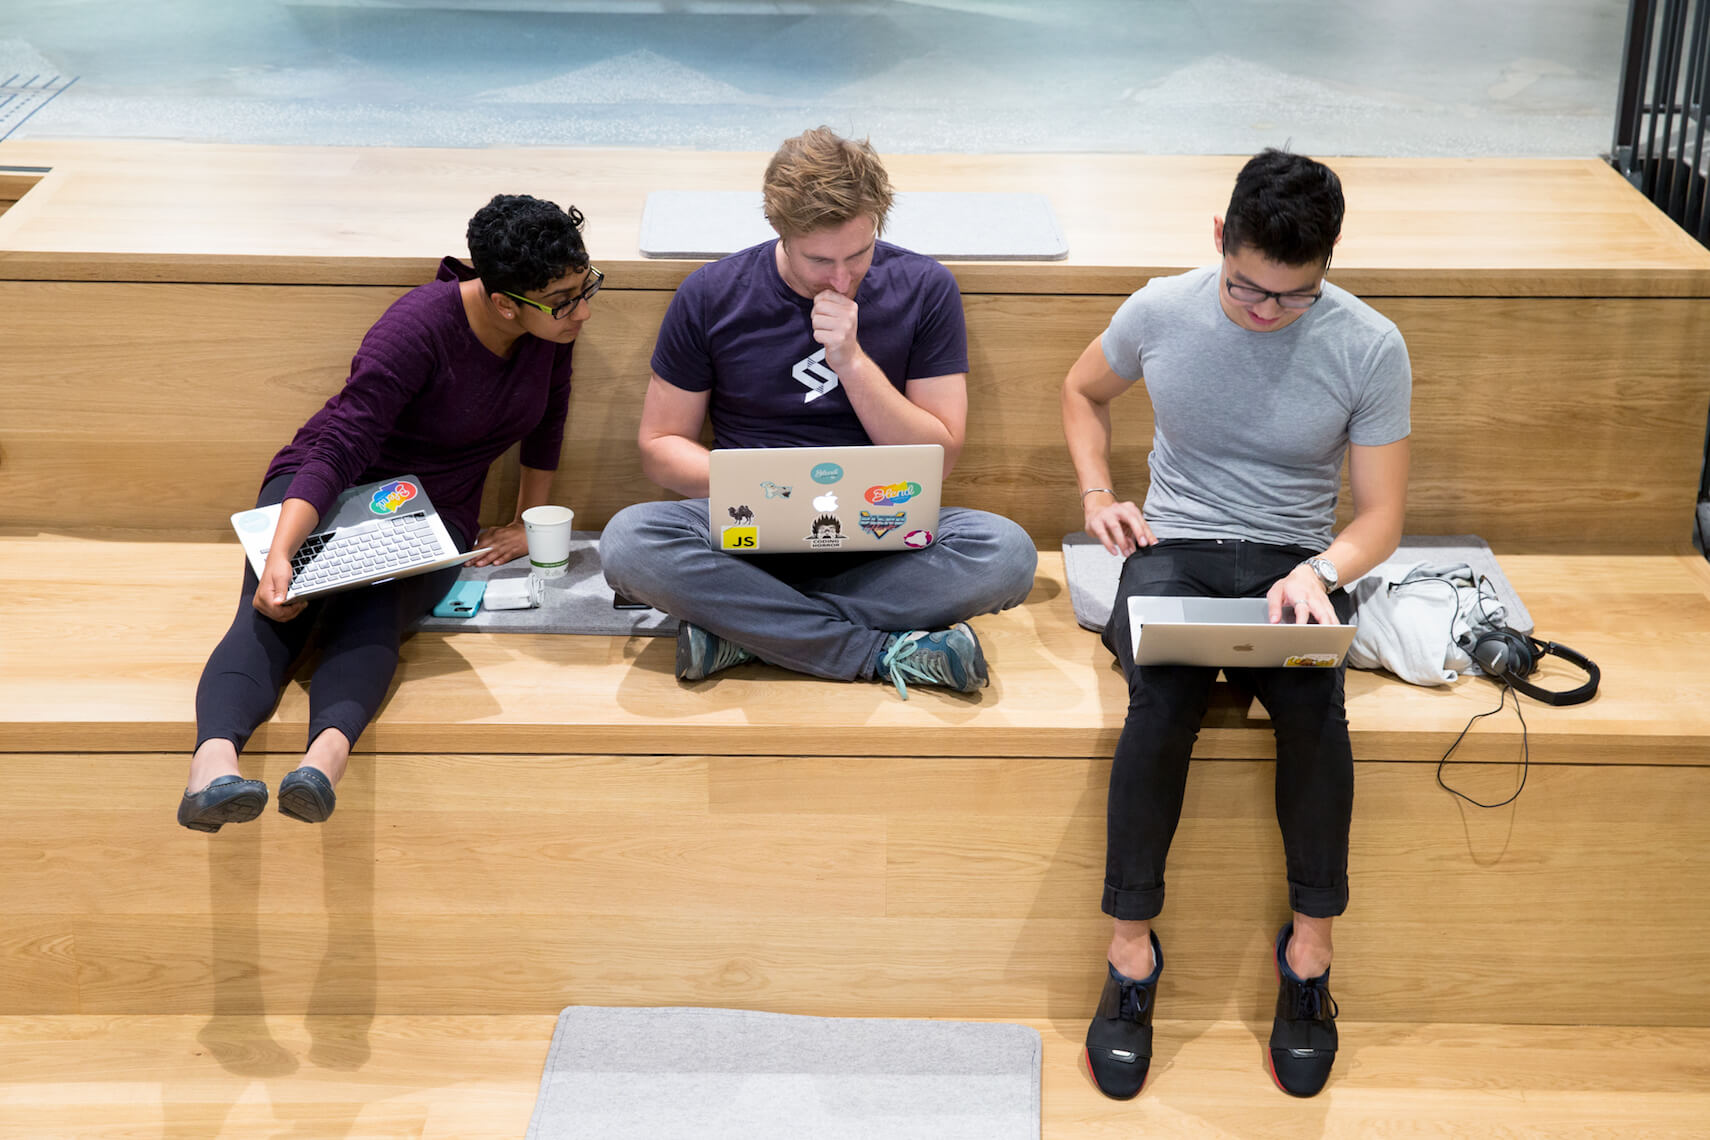 Blend employees working on their laptops